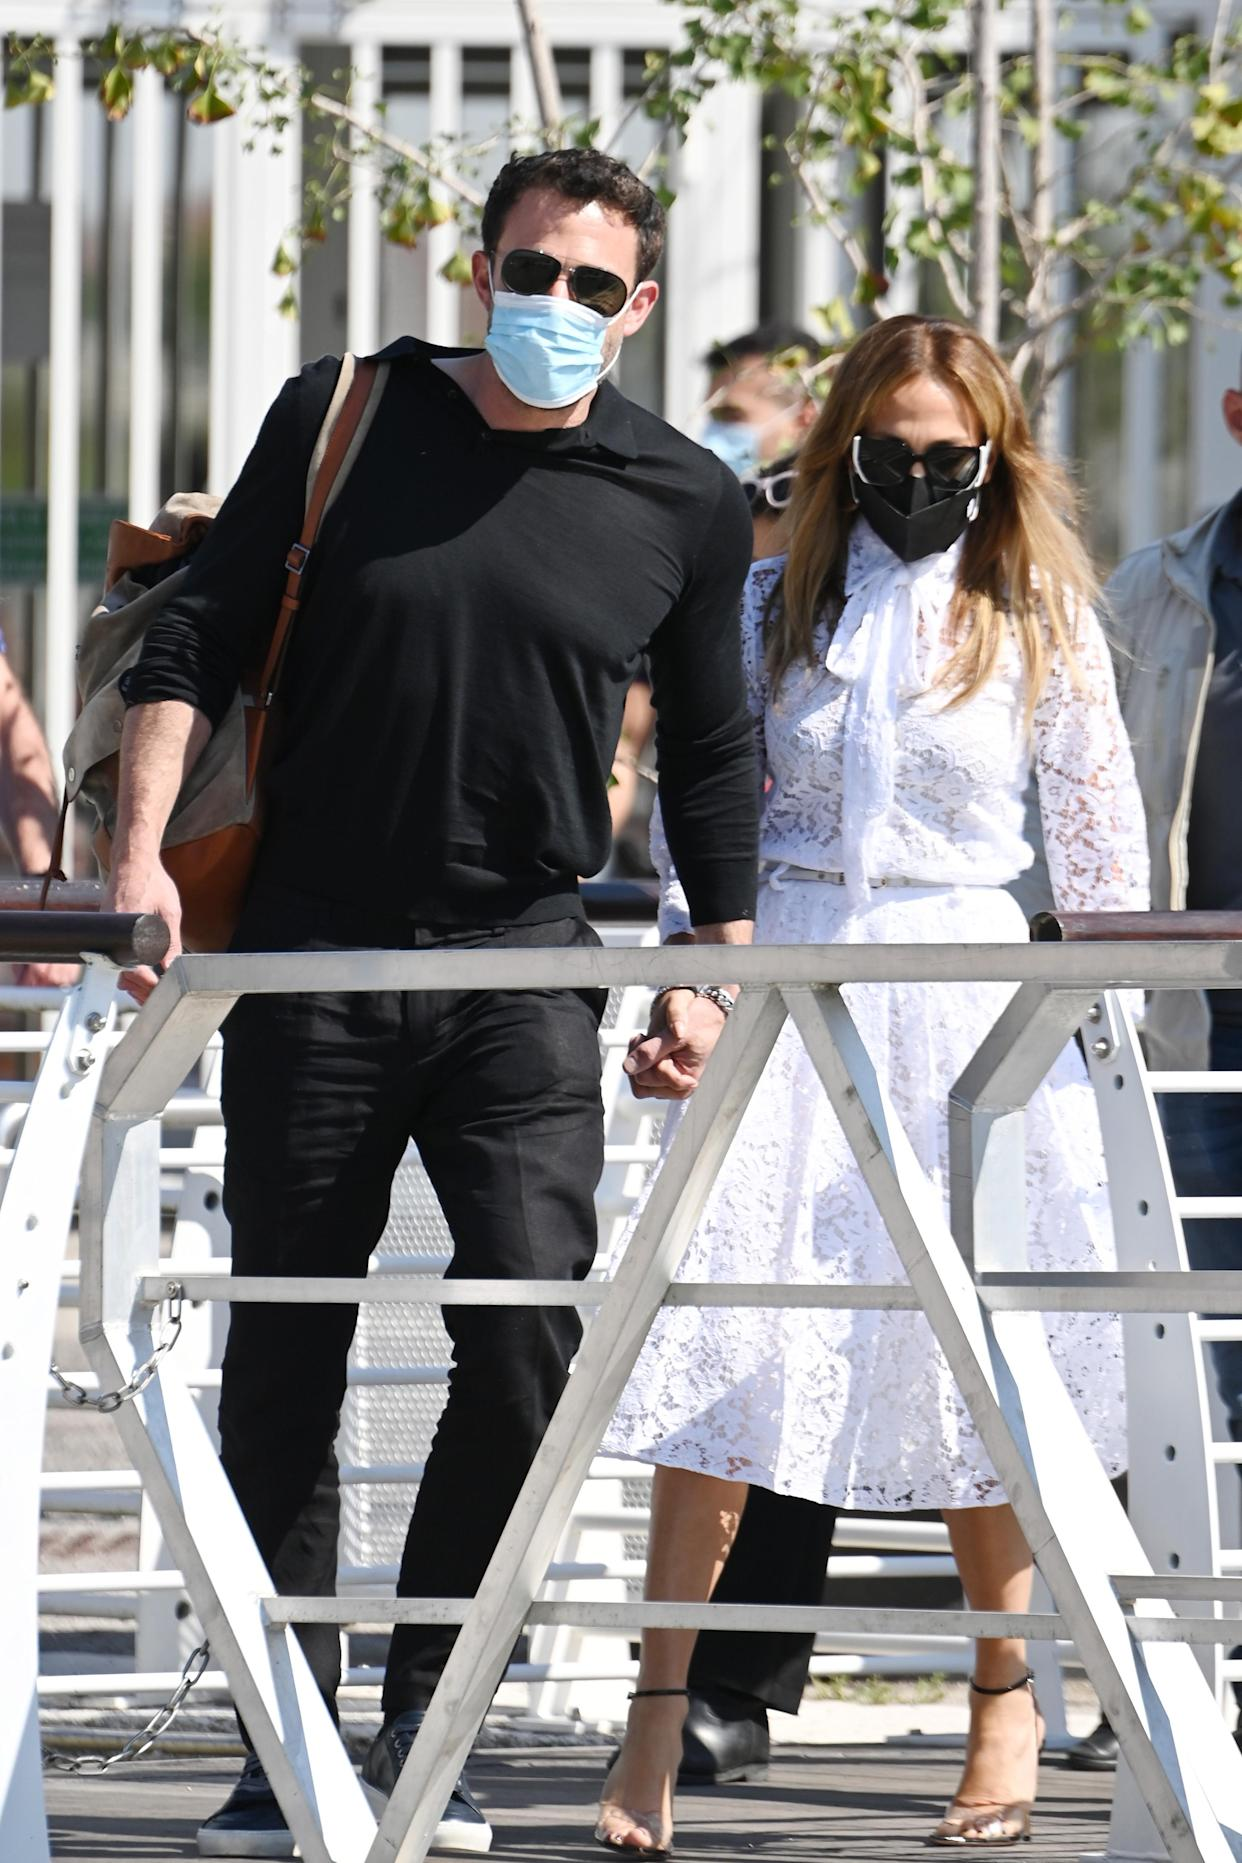 Ben Affleck, dressed in an all-black outfit, holds hands with Jennifer Lopez, wearing a Valentino lace shirt dress, as the pair arrive at the 78th Venice International Film Festival on September 09, 2021 in Venice, Italy. (Getty Images)